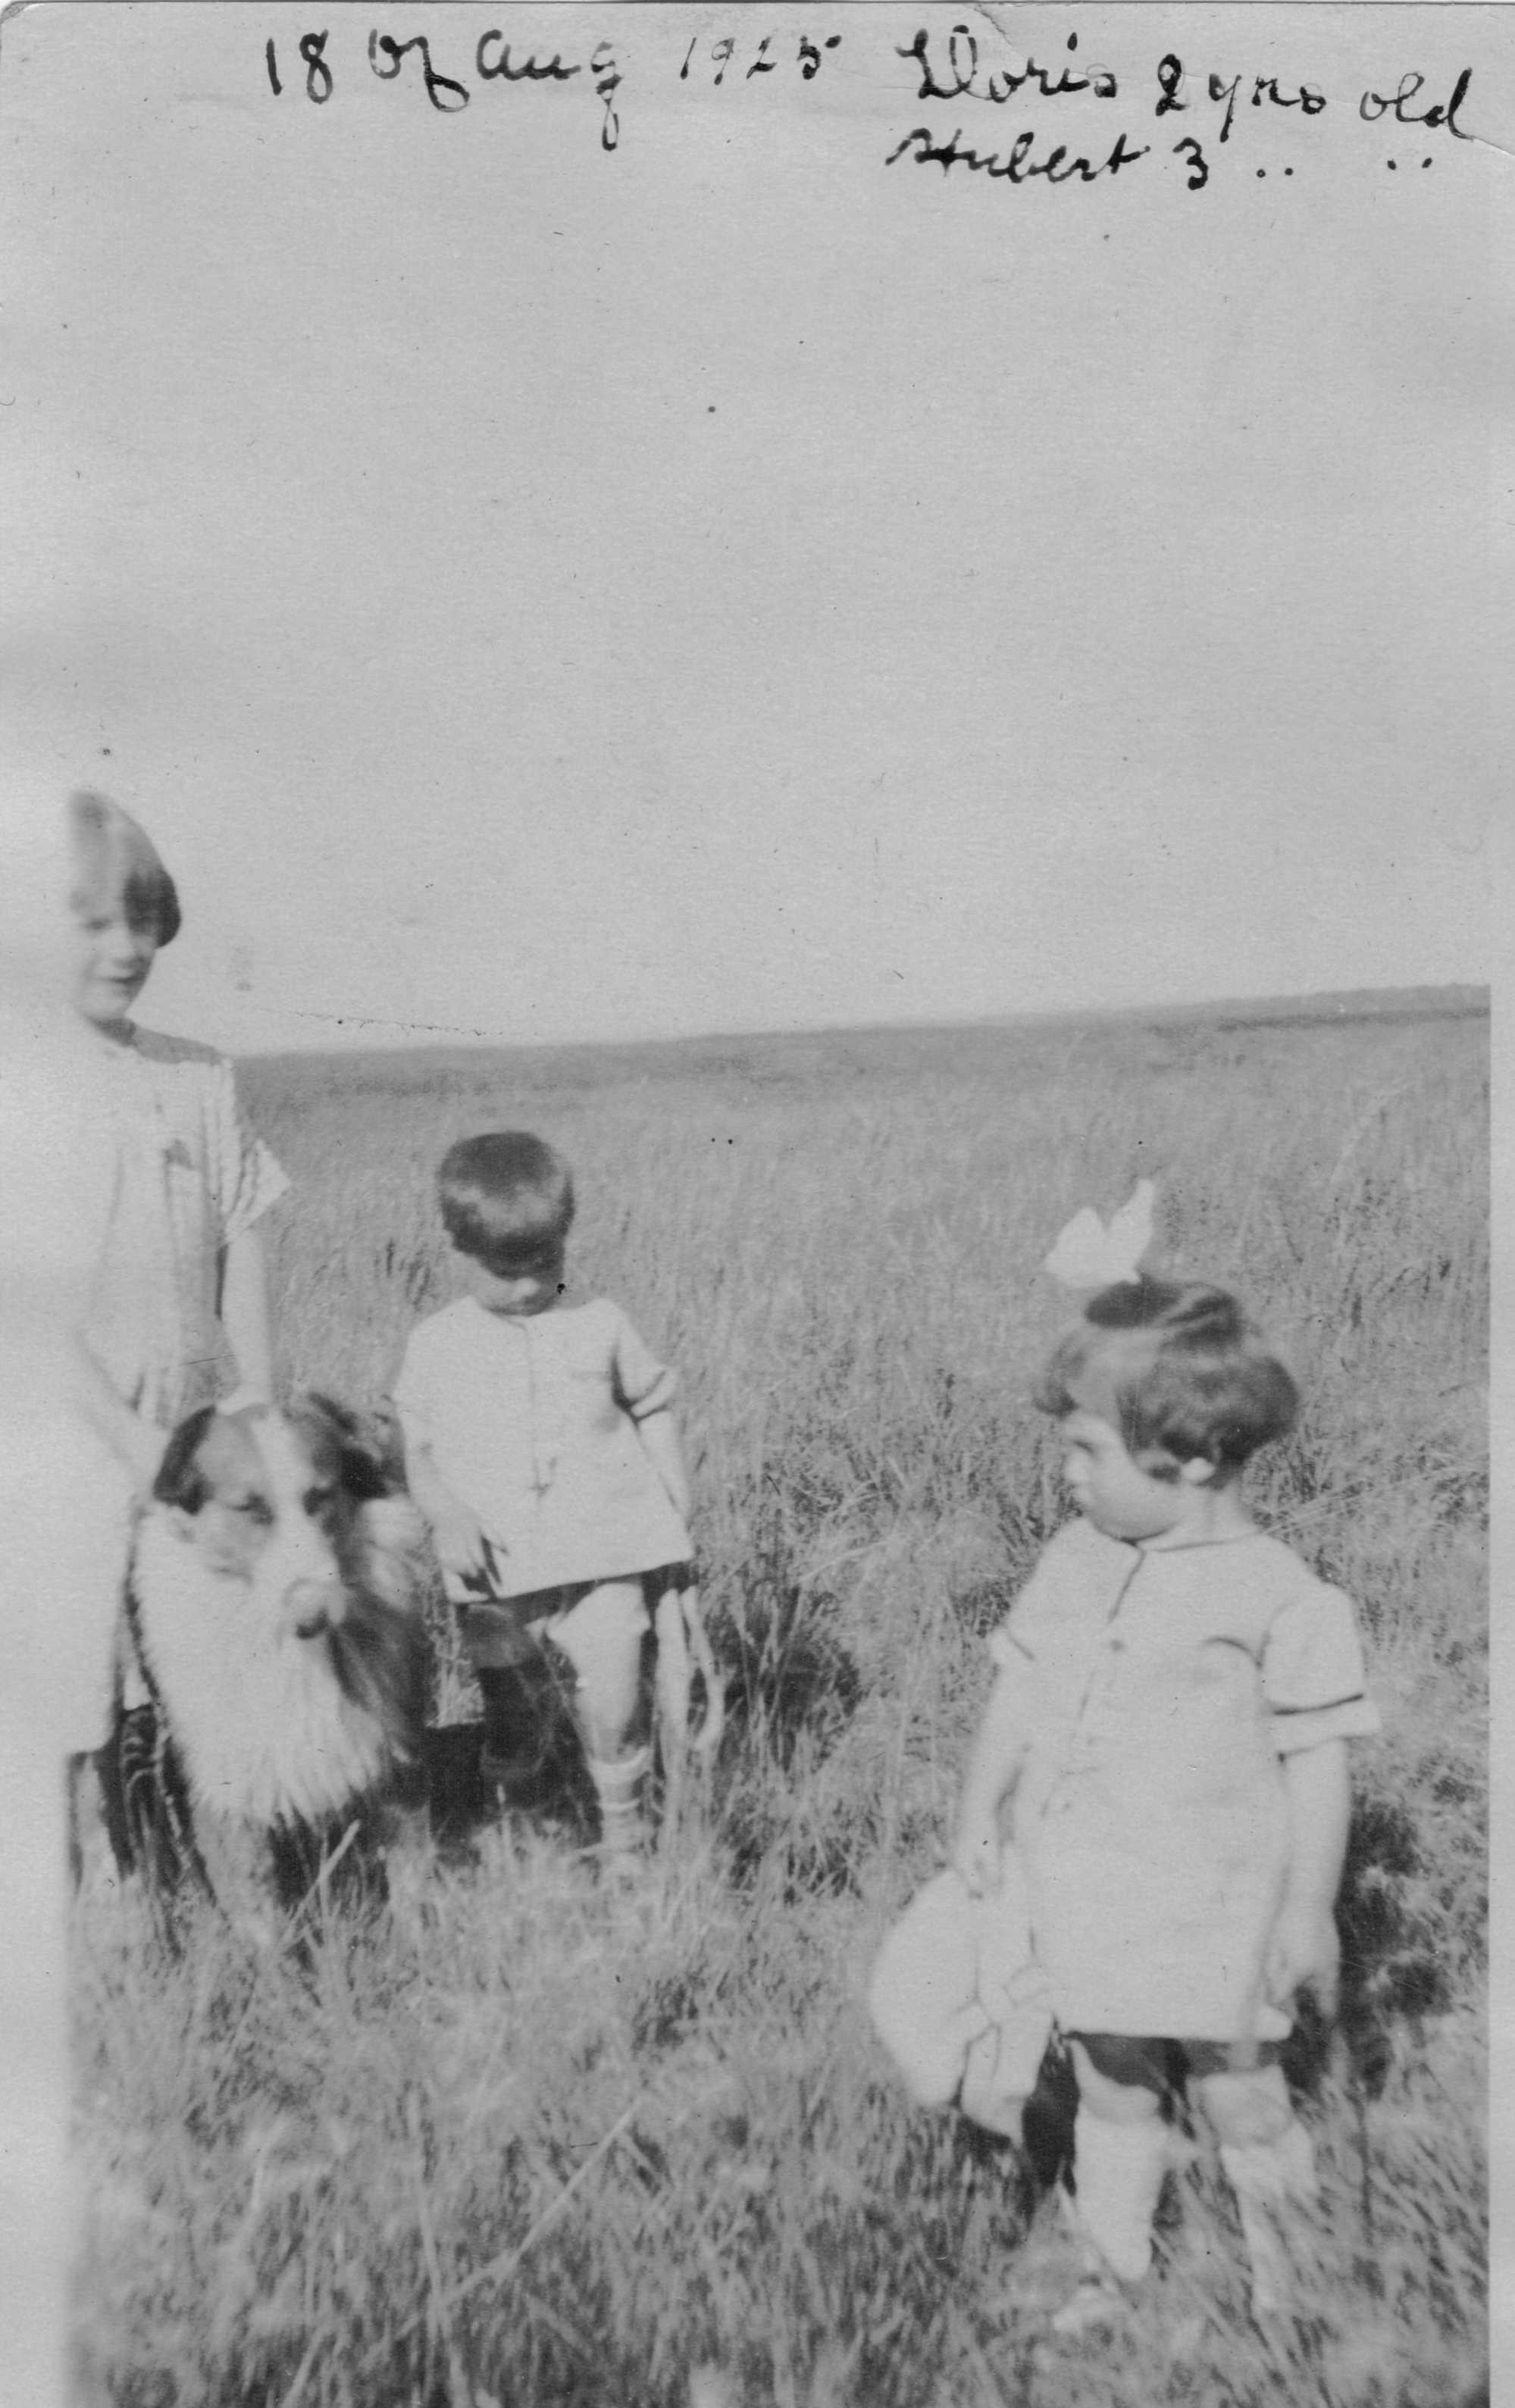 August 18, 1925 Doris and Hubert Brooks in Field With Dog